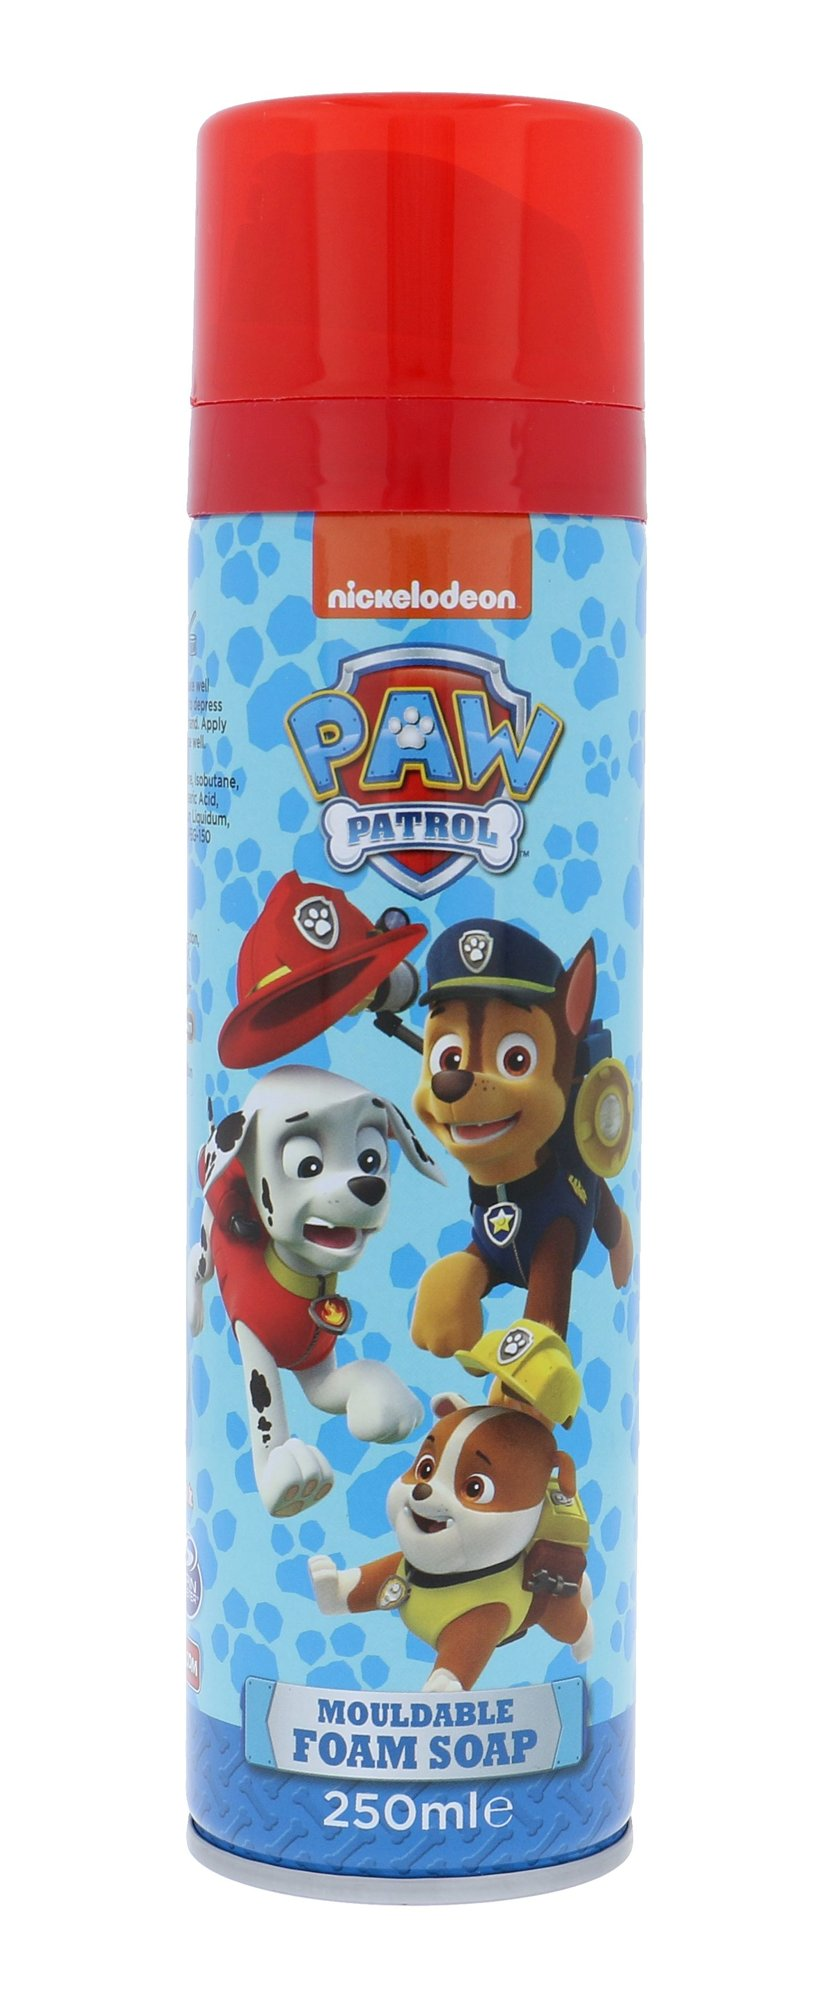 Nickelodeon Paw Patrol Cosmetic 250ml  Mouldable Foam Soap